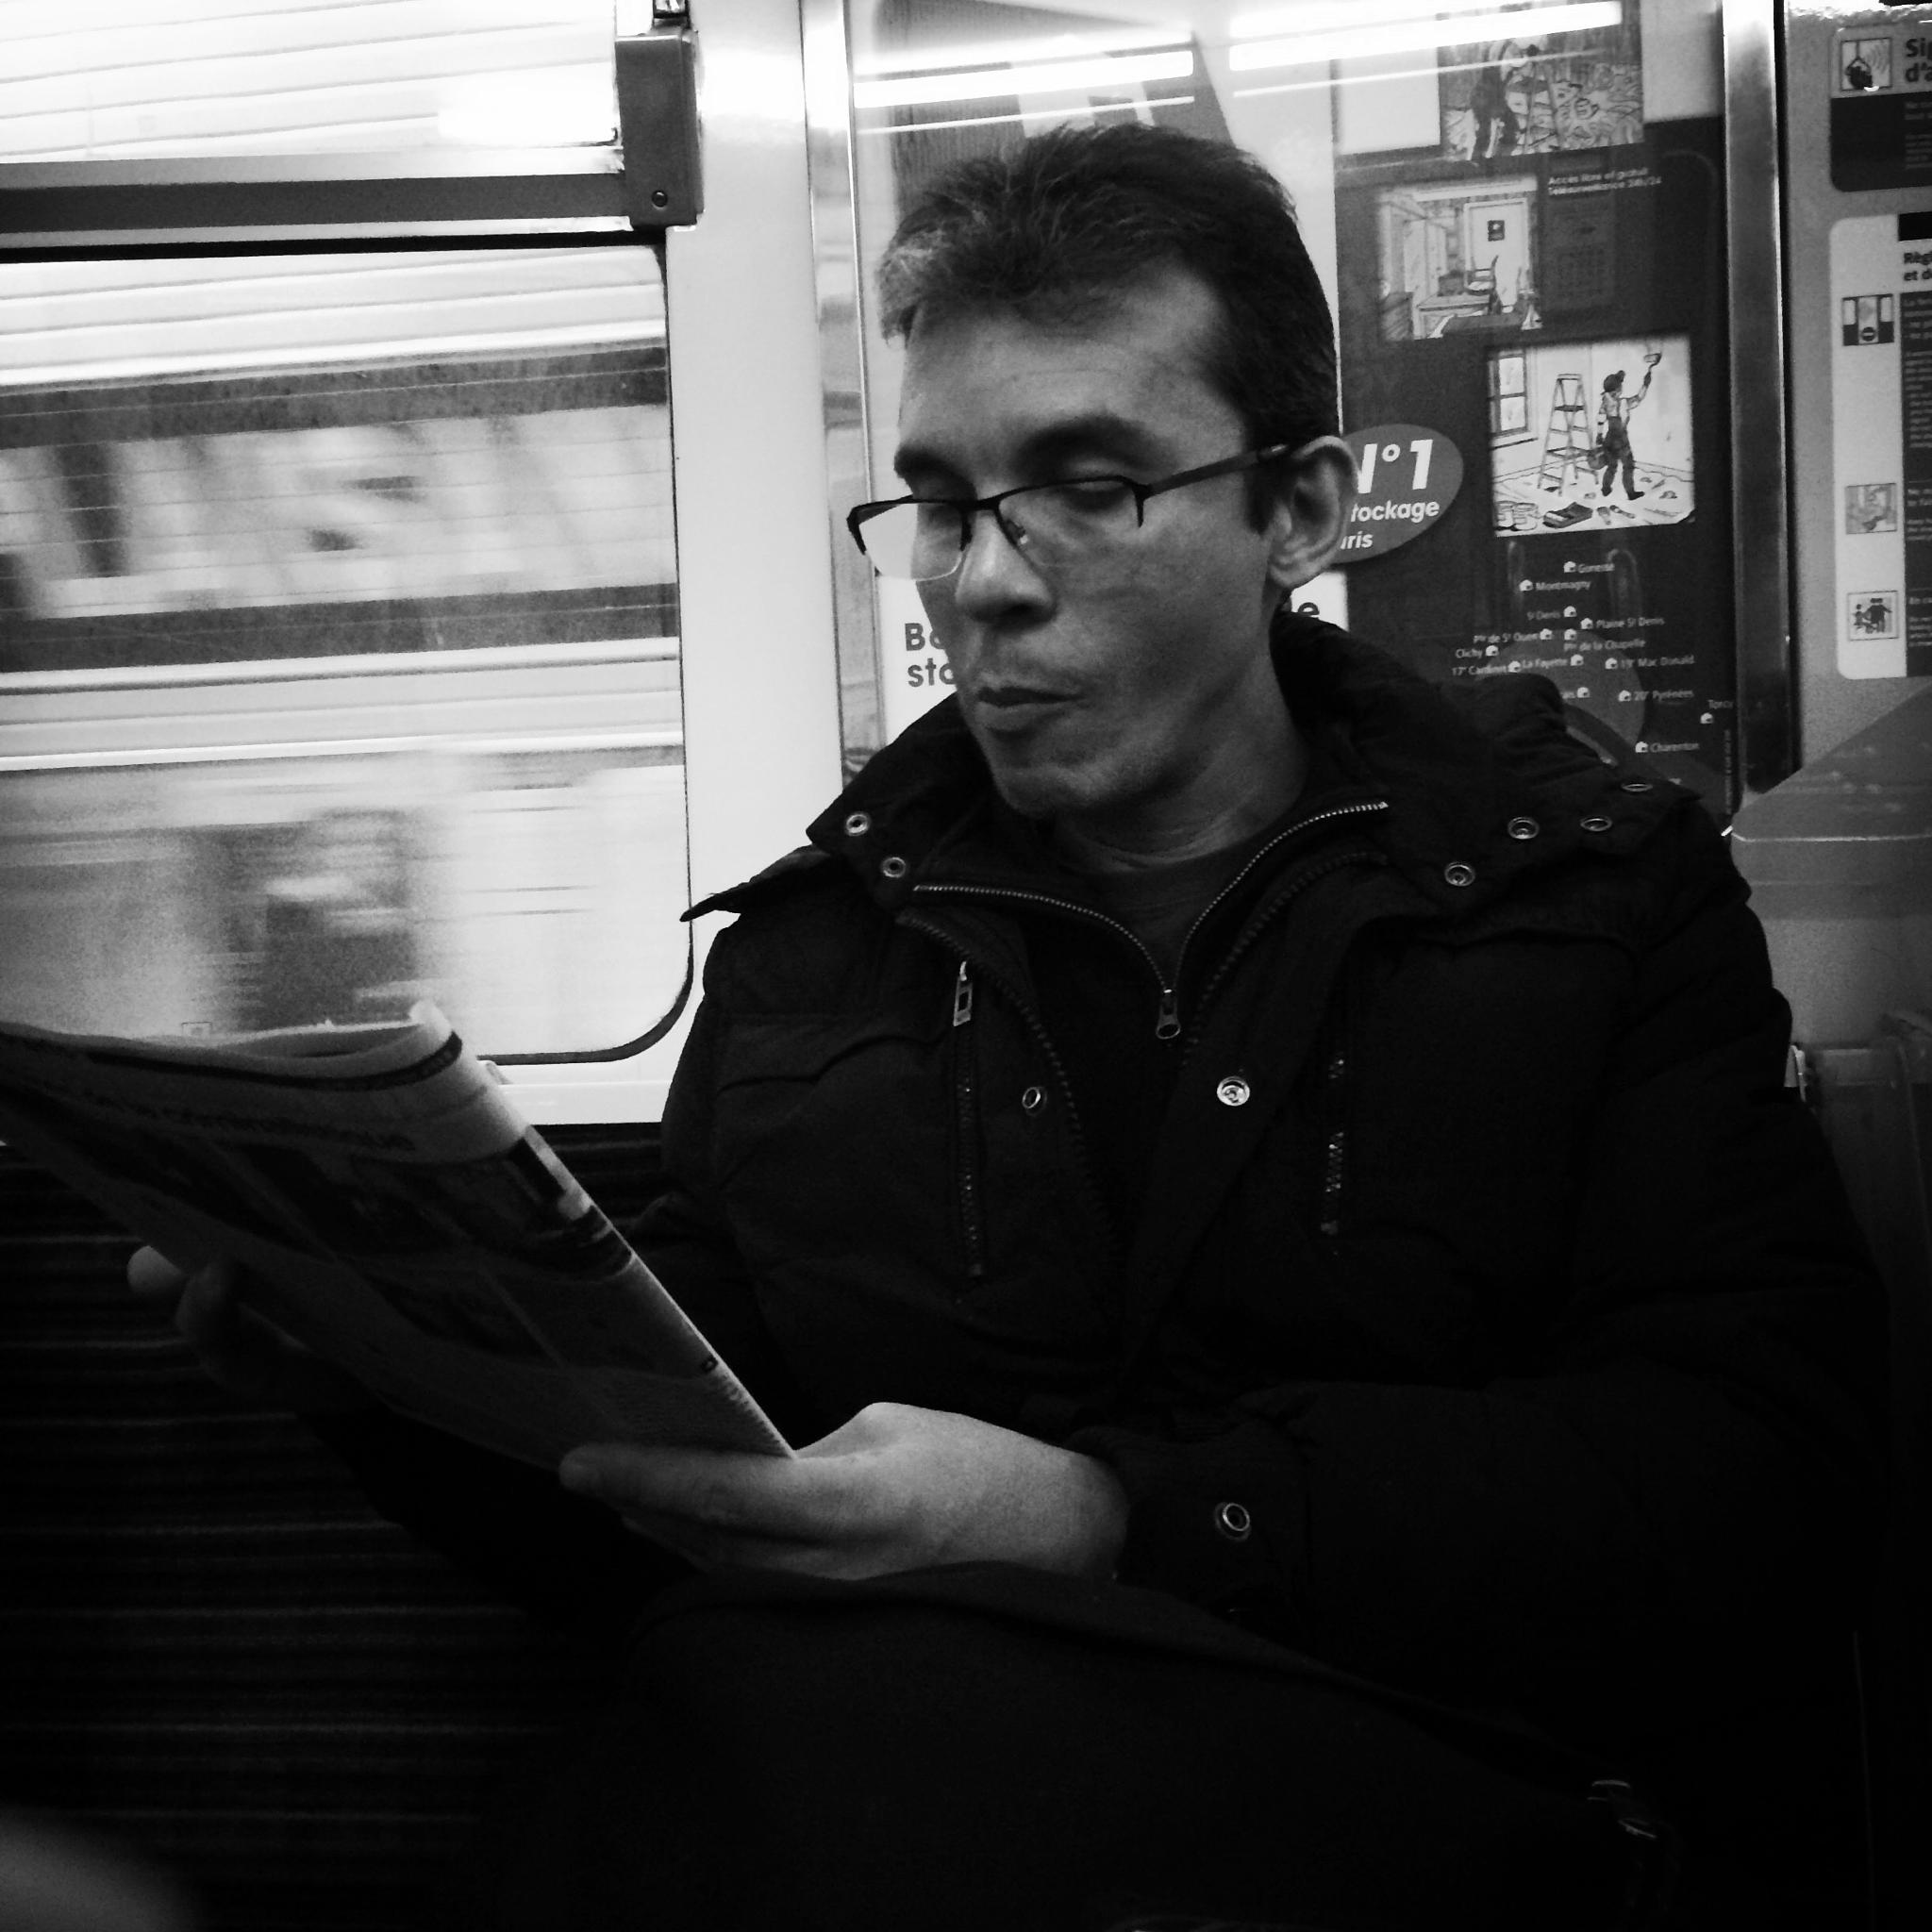 Reading on the metro by parisfind